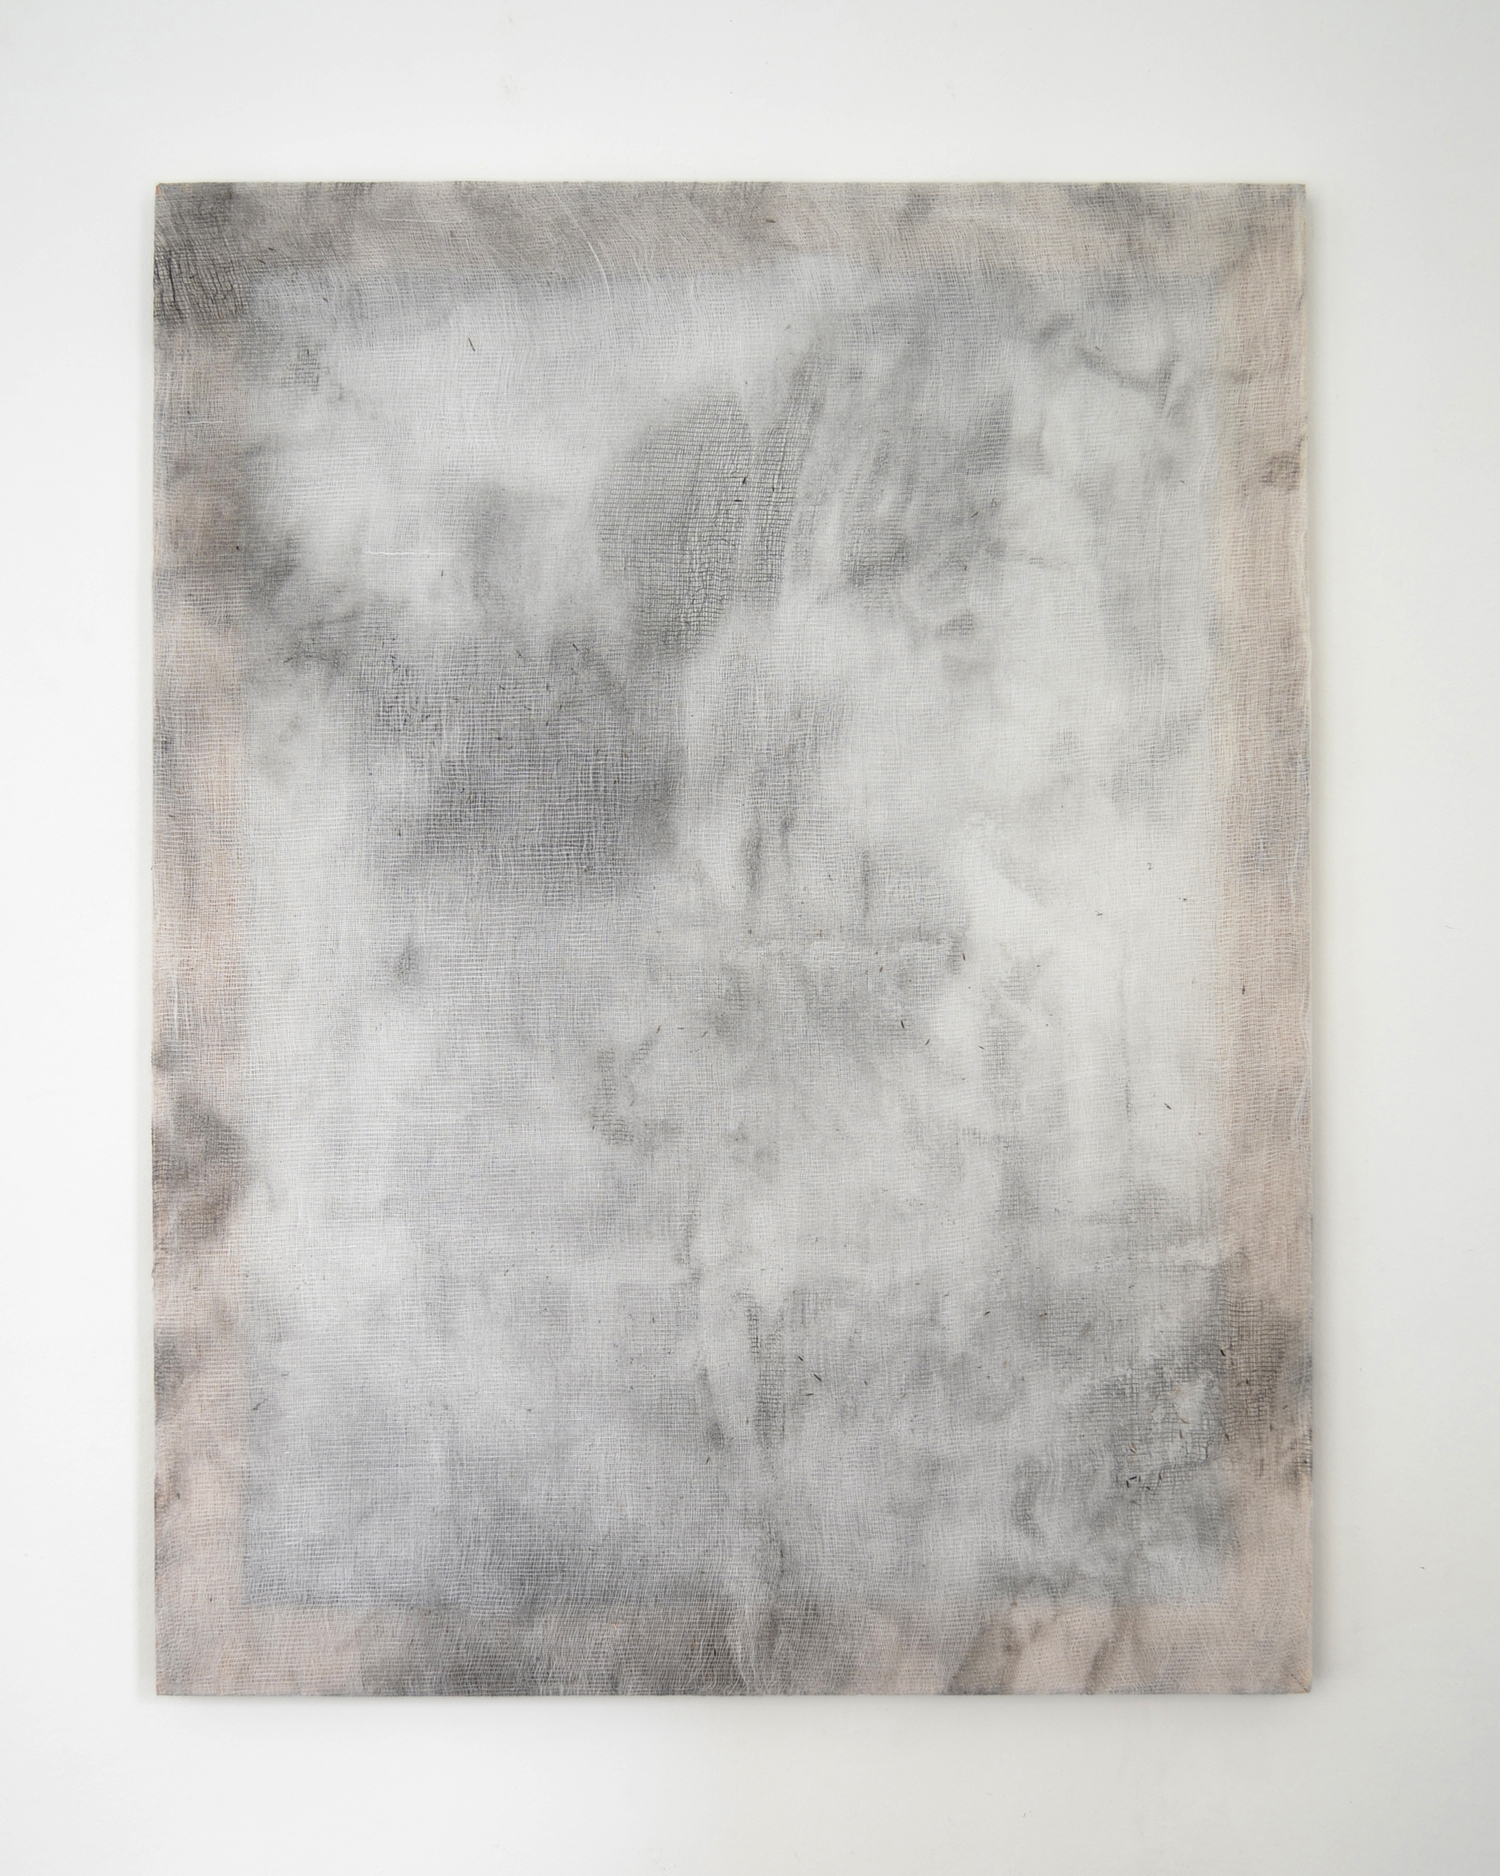 """Alessandro Moroder """"And There They Seemed. Bathed In Silence. All Alone,� 2019 (enamel and dirt on cheese cloth, 101x76cm)."""